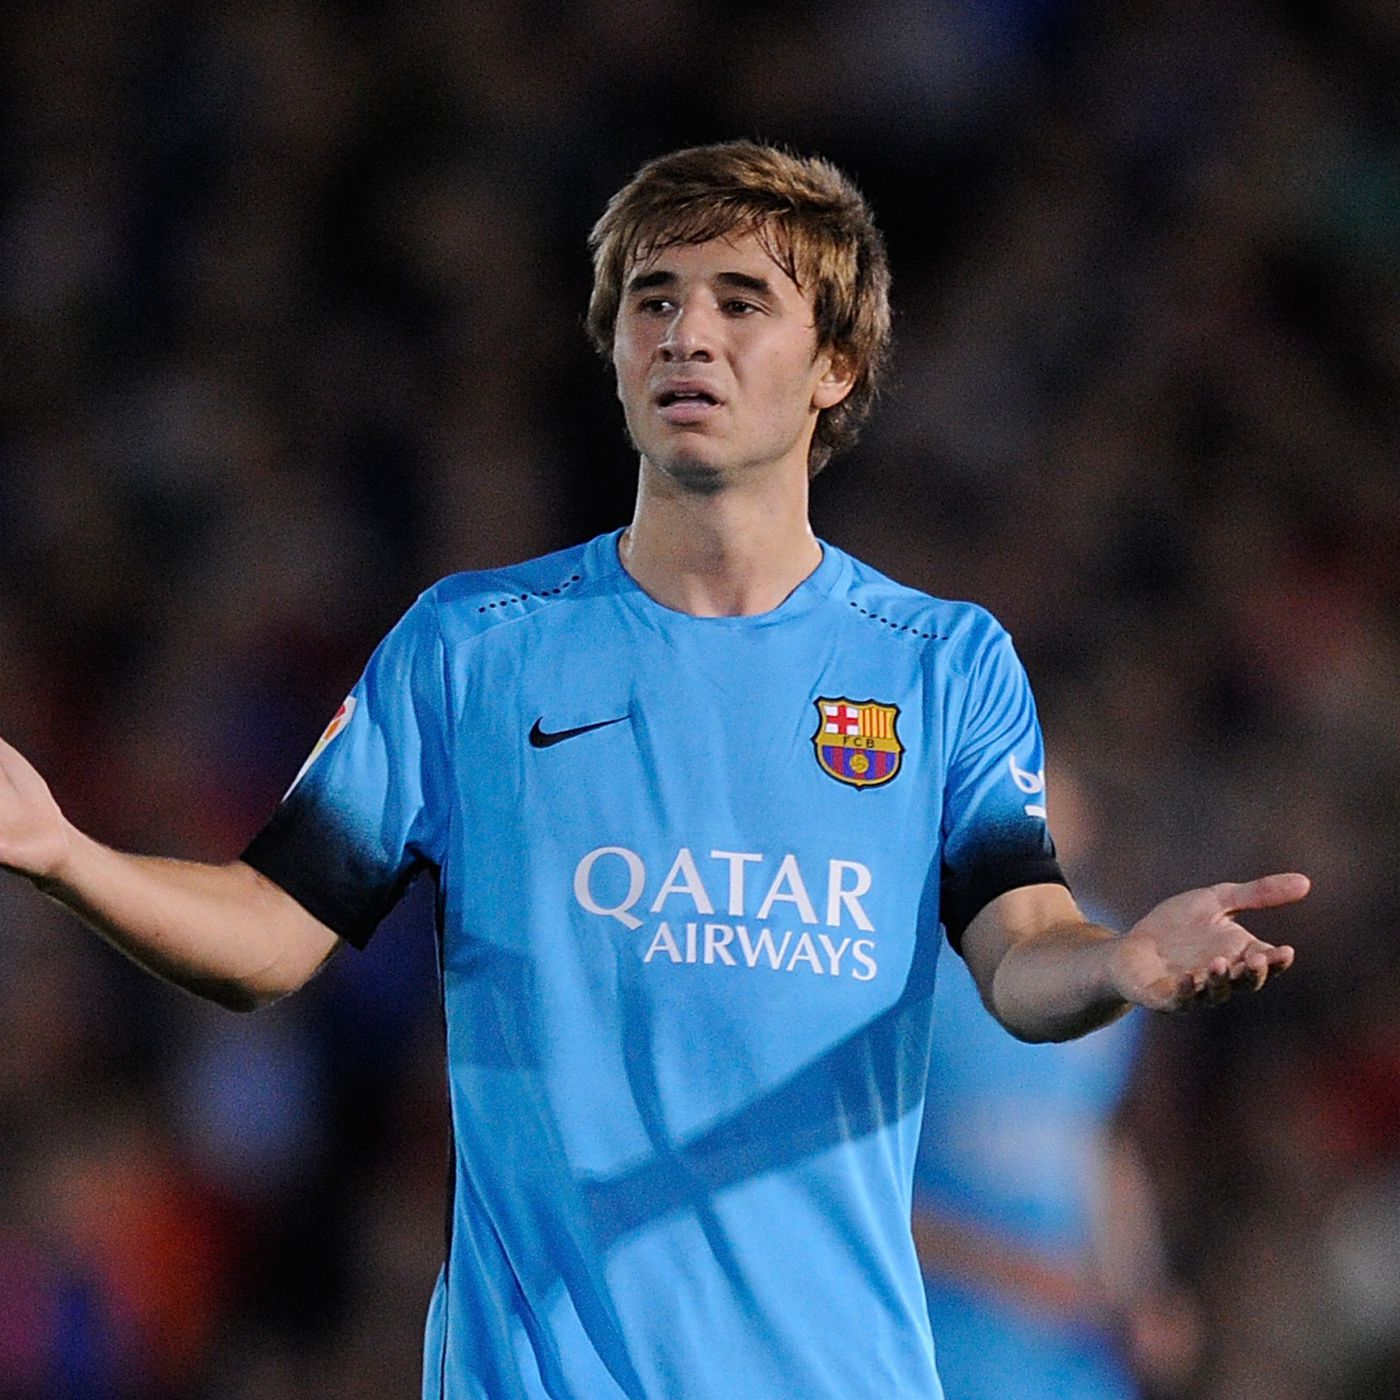 Villanovense vs barcelona betting tips spread betting on sports from a professional gambler